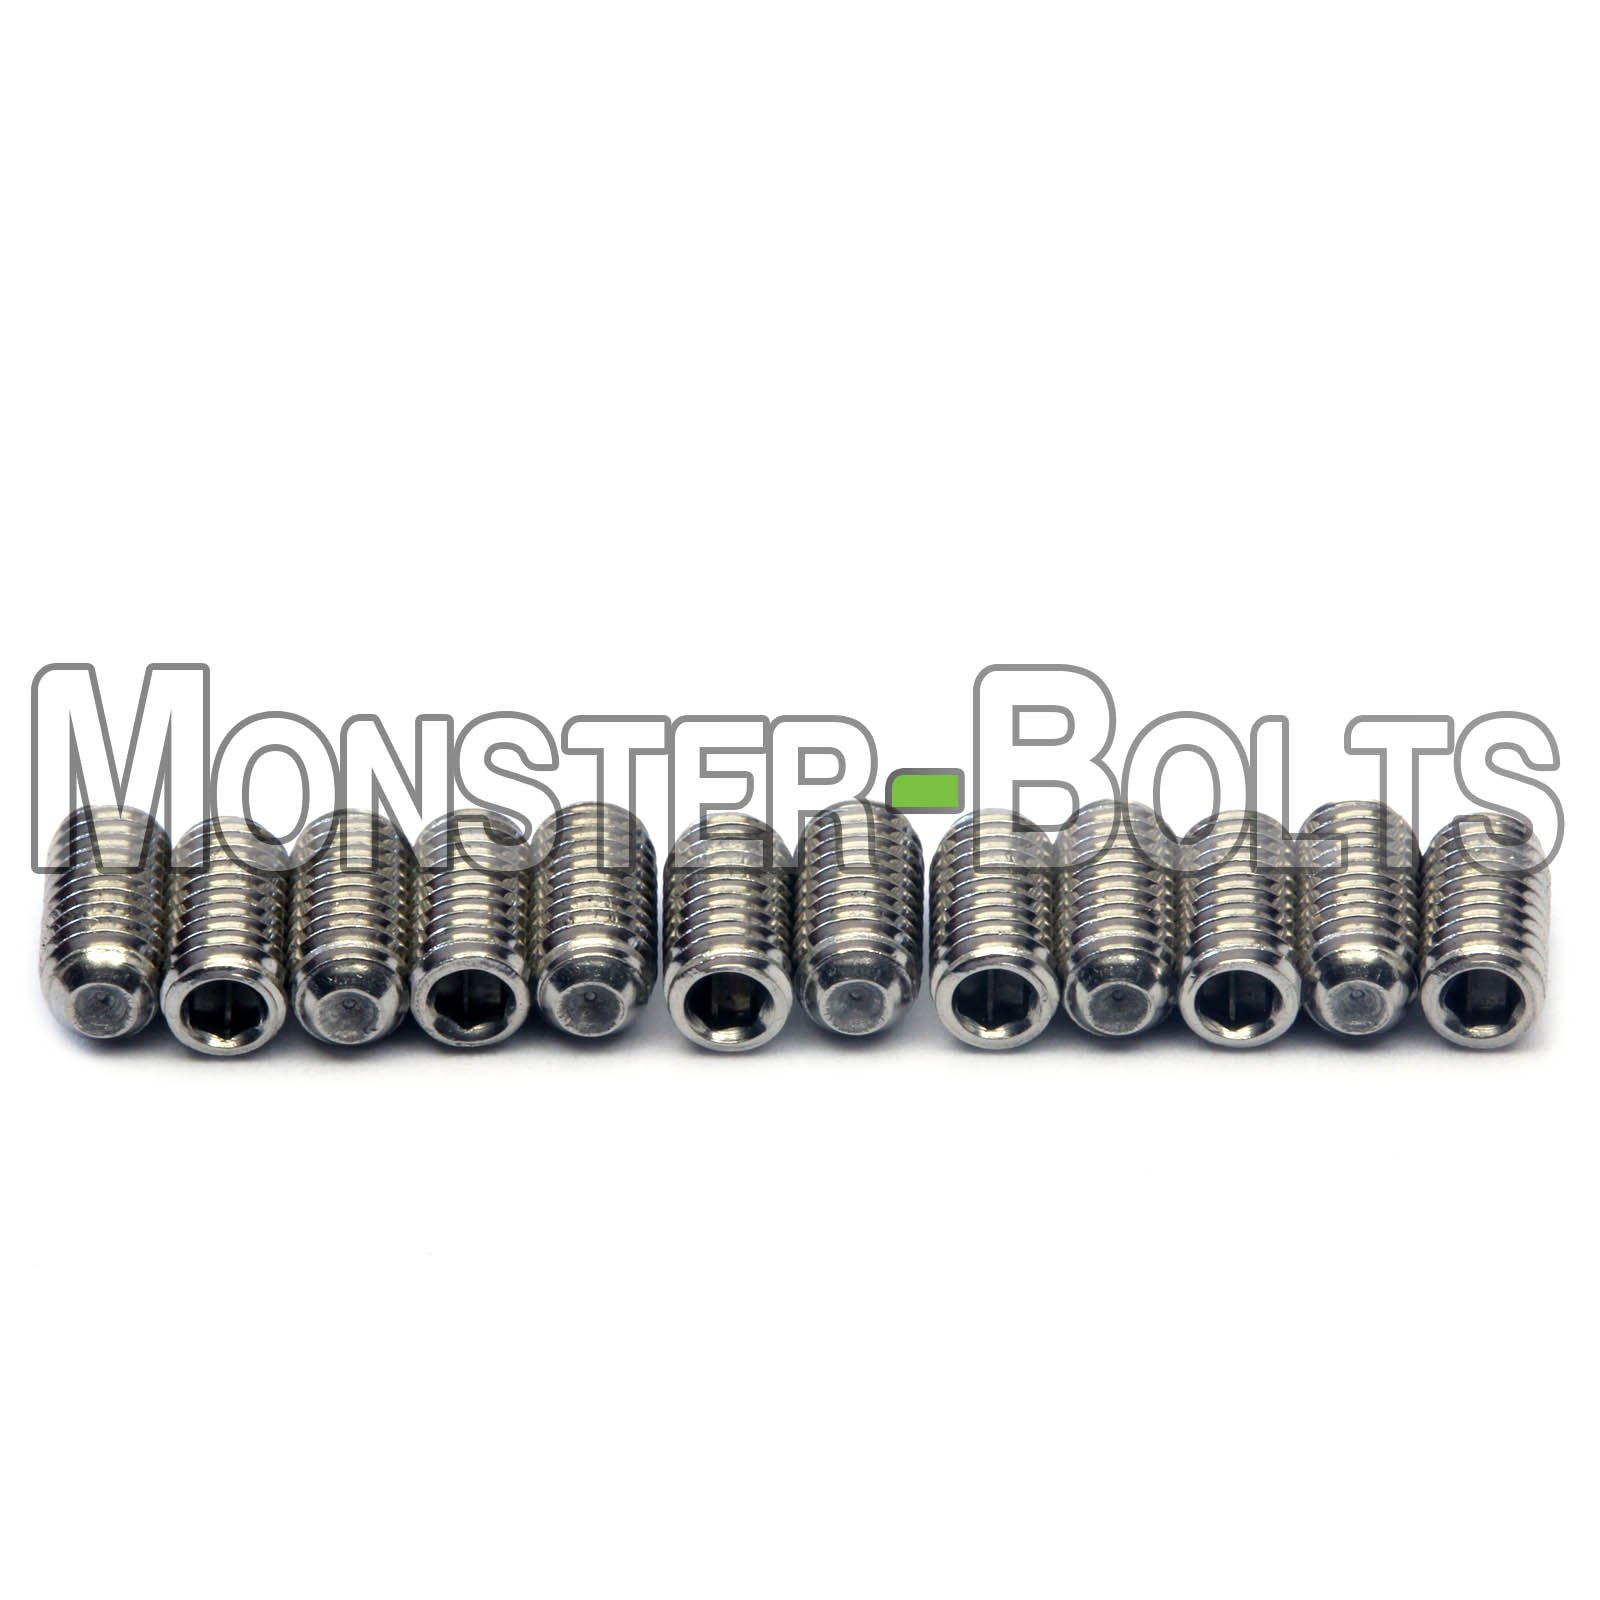 Guitar Saddle Bridge Height Adjustment Hex Screws set (12) for US / Inch and Metric - MonsterBolts (Metric - M3 x 6mm, Stainless Steel)